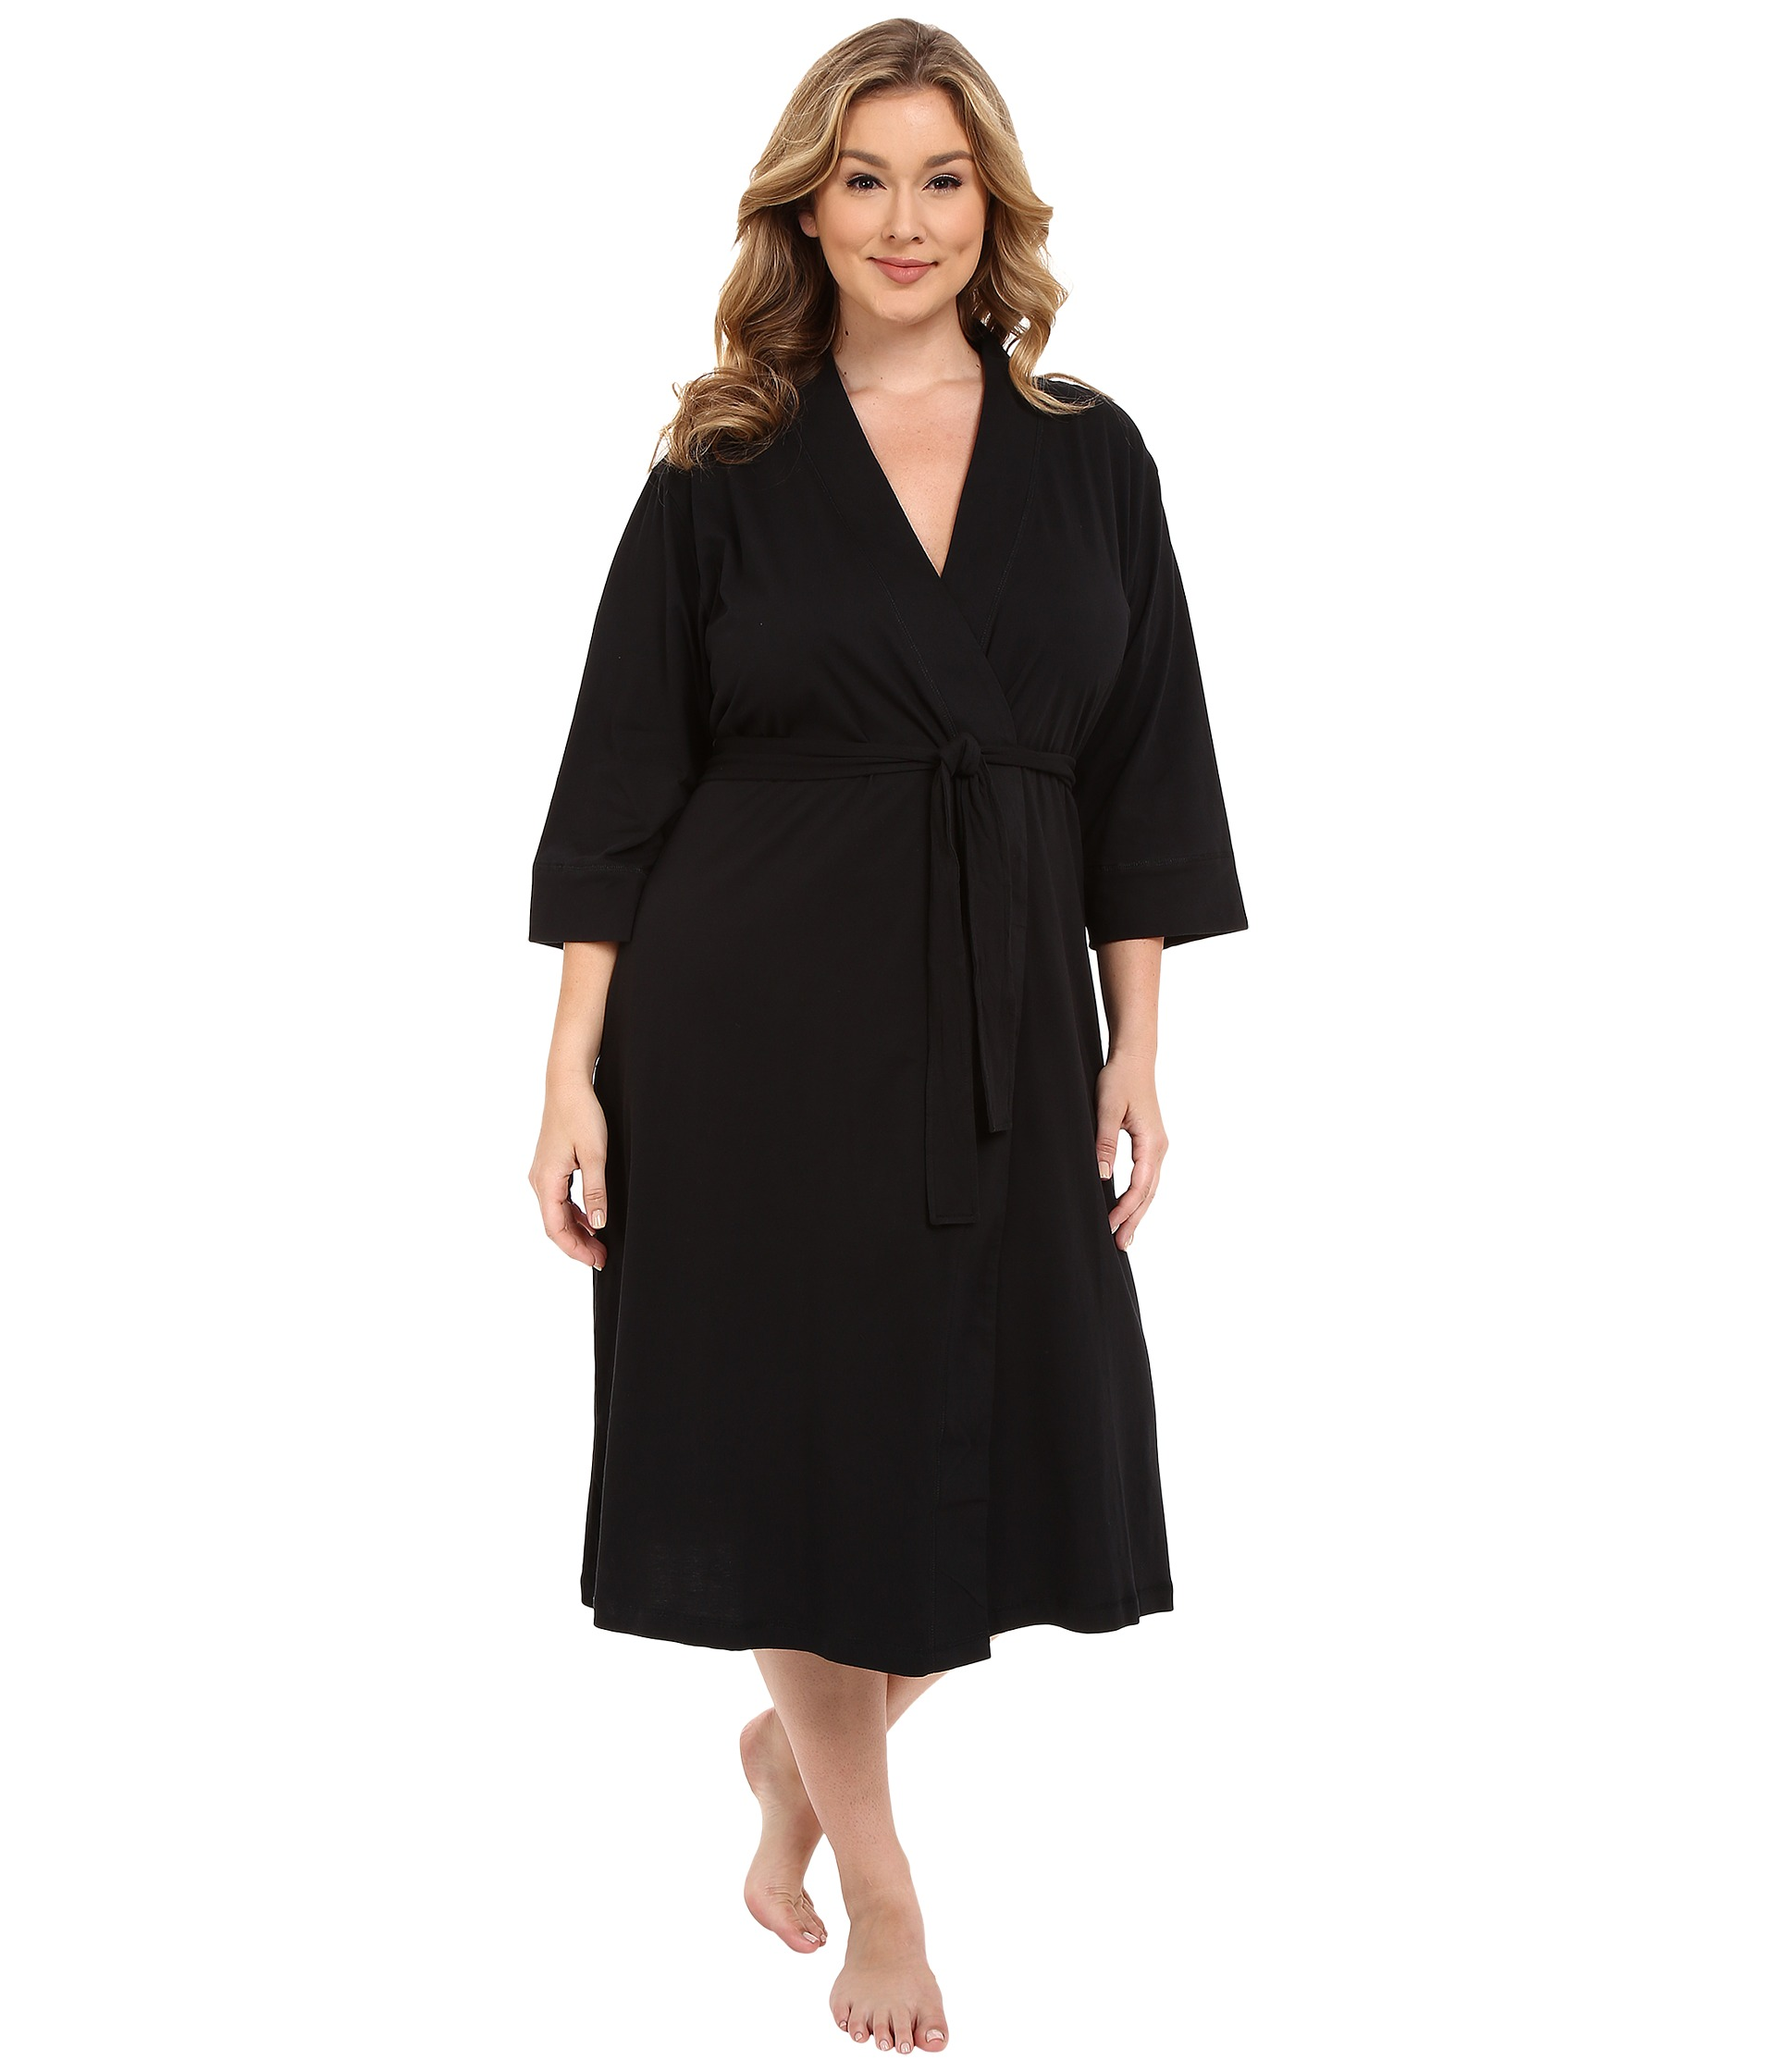 Jockey Women's Plus-Size Cotton Long Robe. by Jockey. $ - $ $ 45 $ 91 Prime. FREE Shipping on eligible orders. Some sizes/colors are Prime eligible. out of 5 stars Product Features Long jersey robe featuring three-quarter sleeves, self belt, and hand pockets.